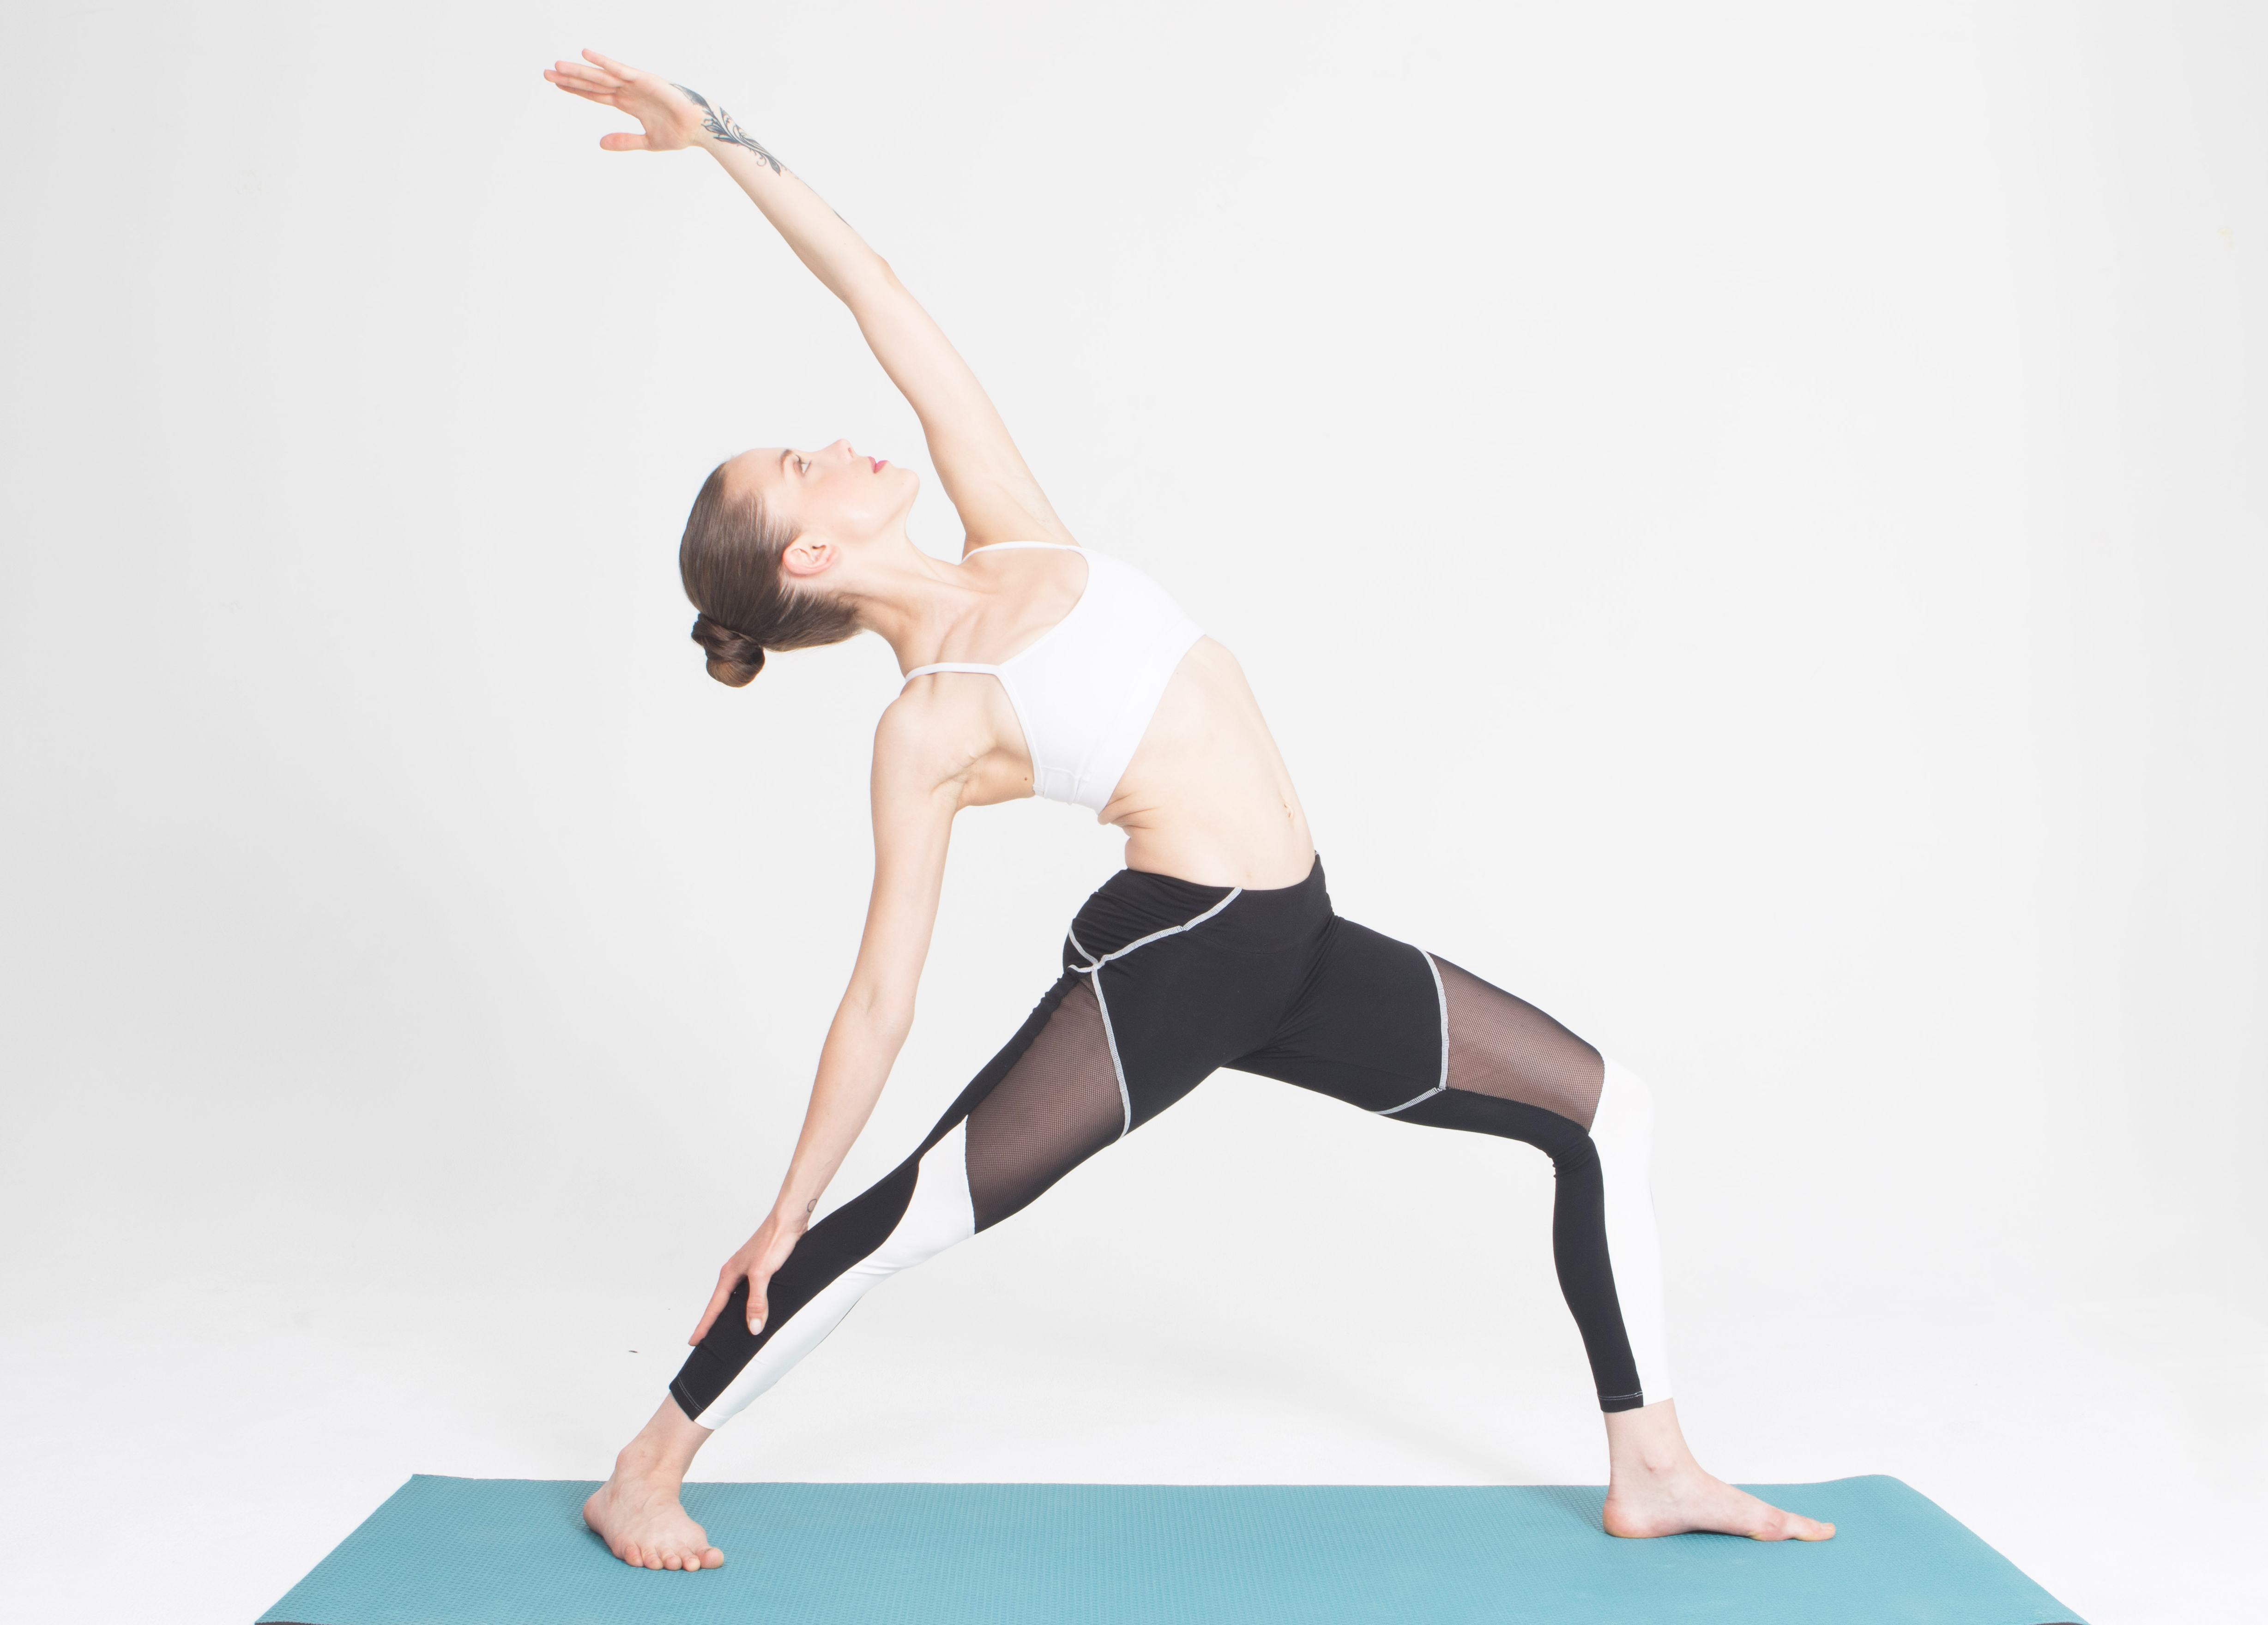 Yoga Pants That Correct Your Form and the Future of Haptic Fashion